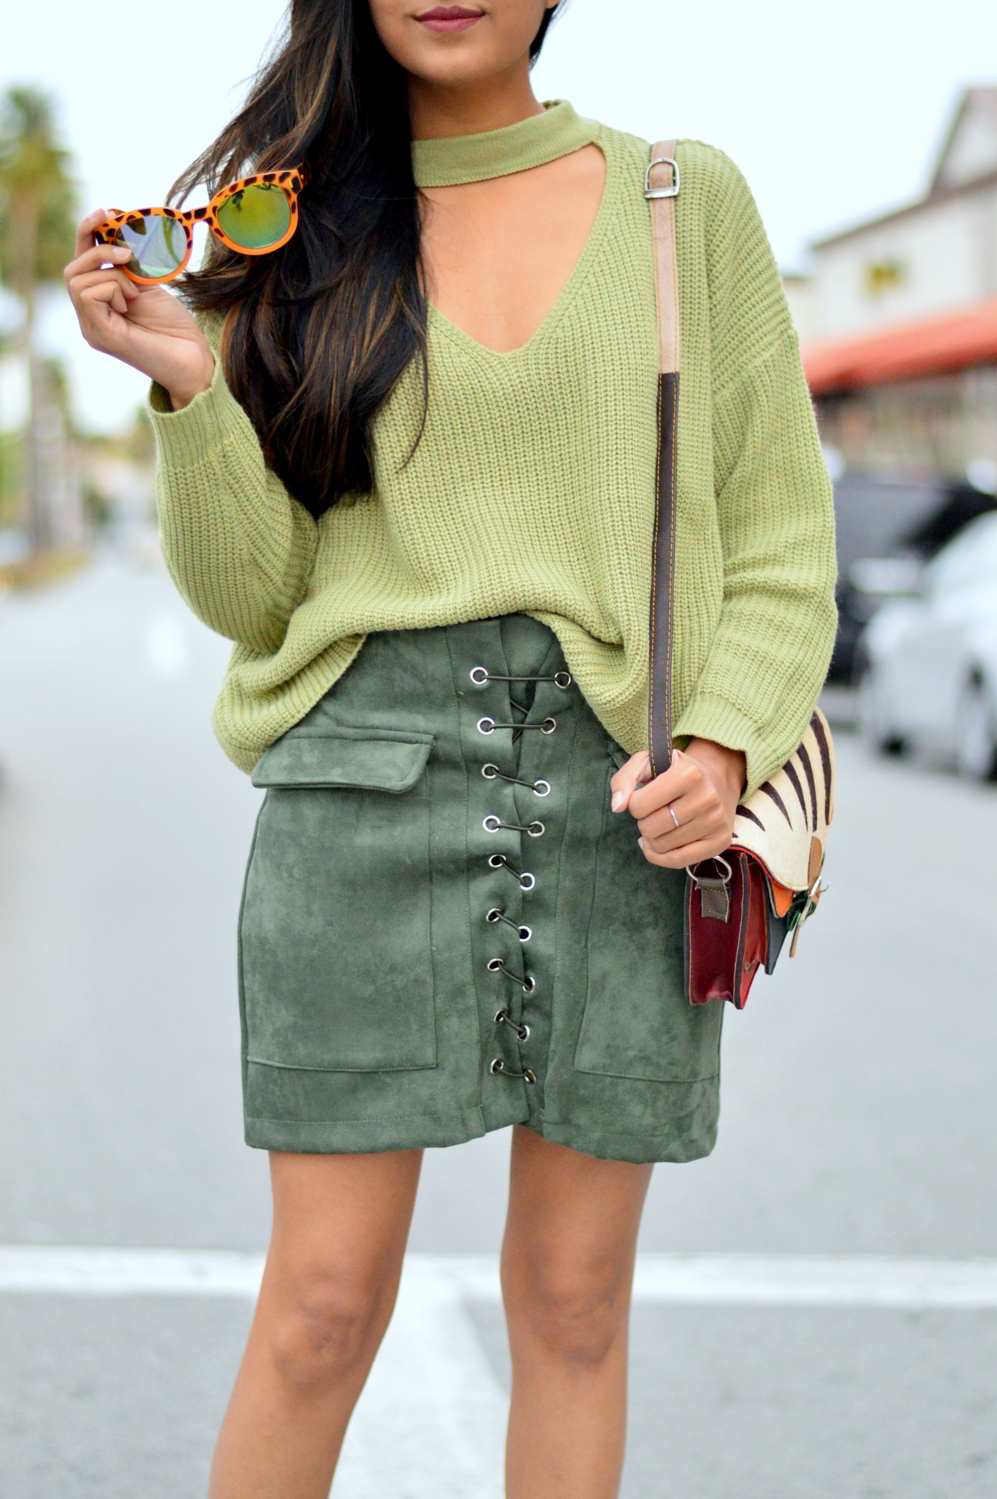 monochrome-green-choker-sweater-suede-lace-up-skirt-spring-style 4